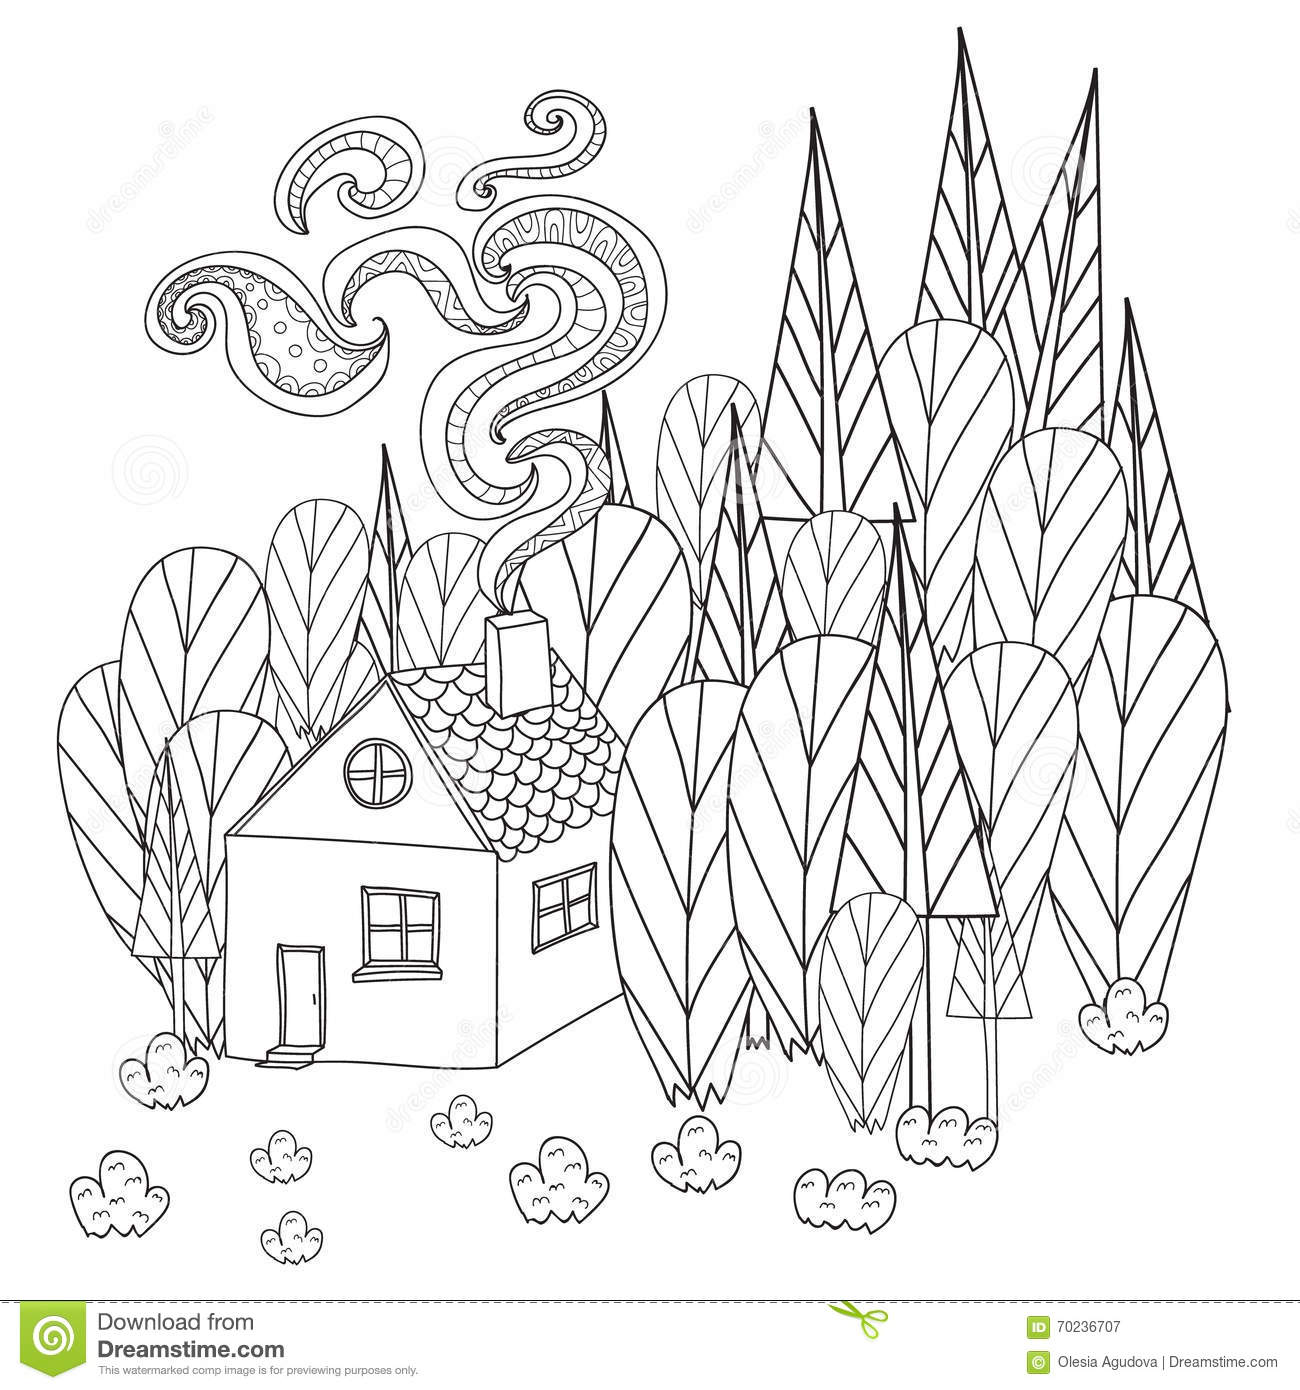 Coloring Pages For Adults And Children Book. Cartoon House